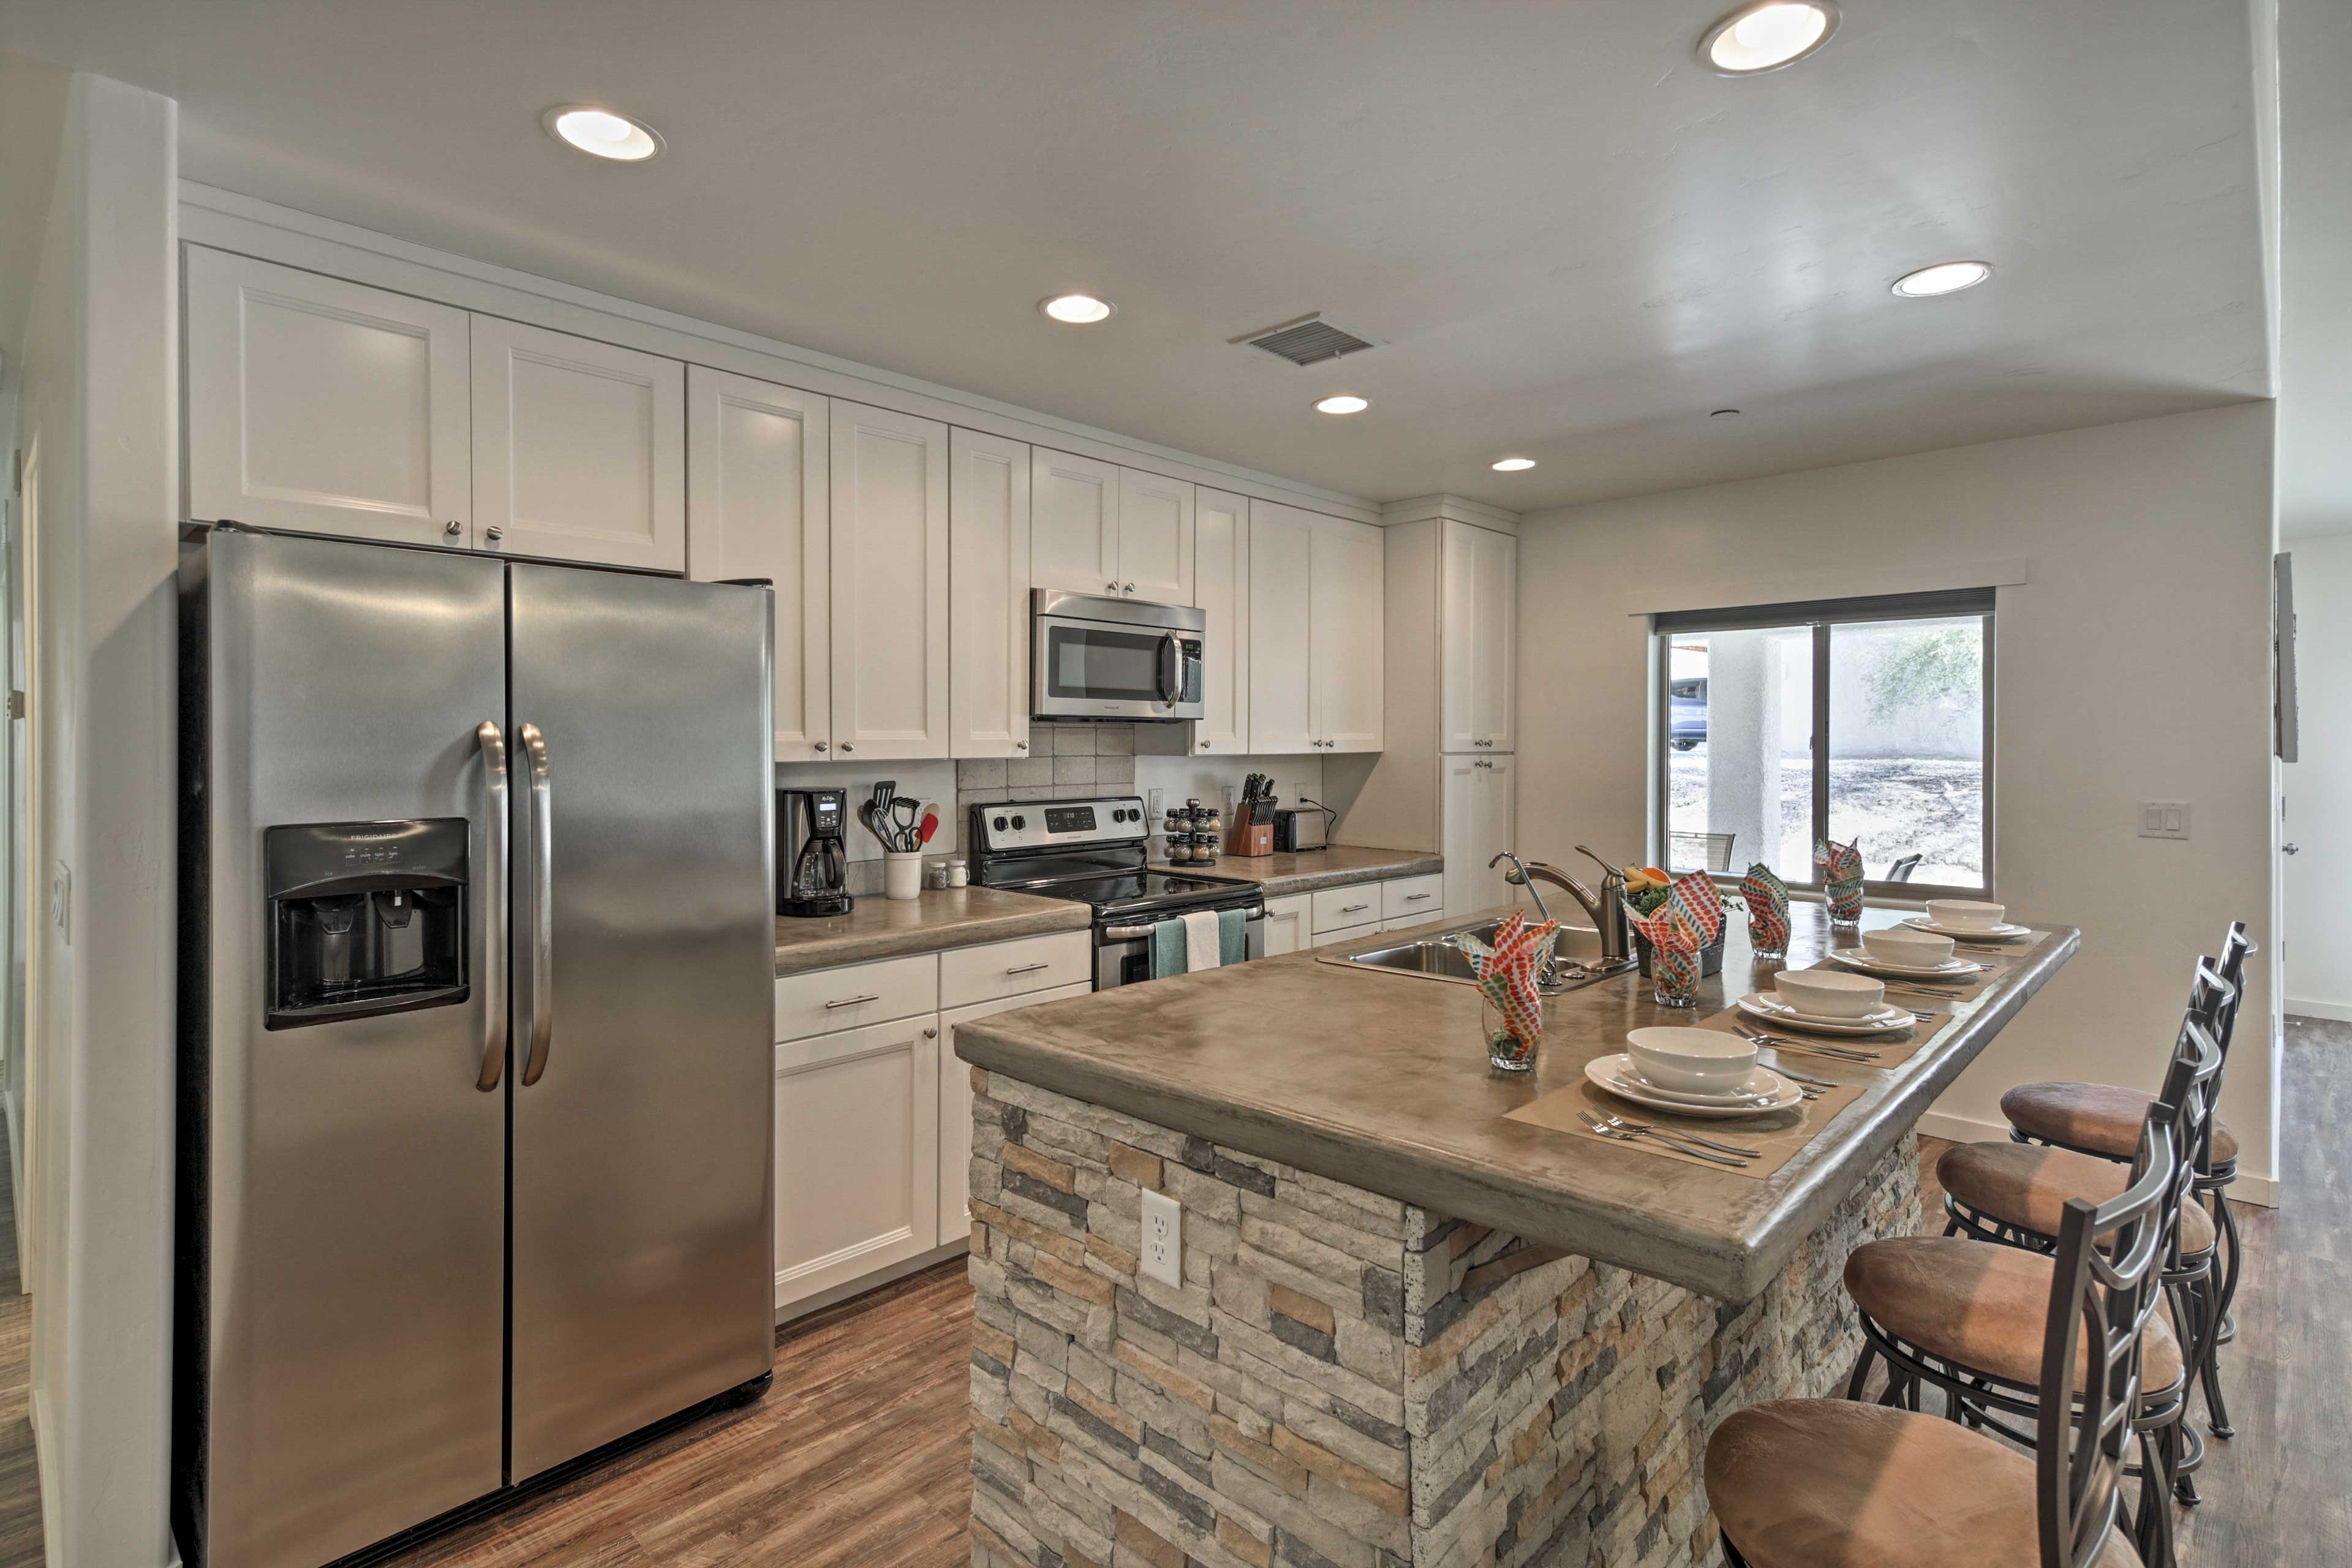 Wine and dine at the 4-person kitchen island.